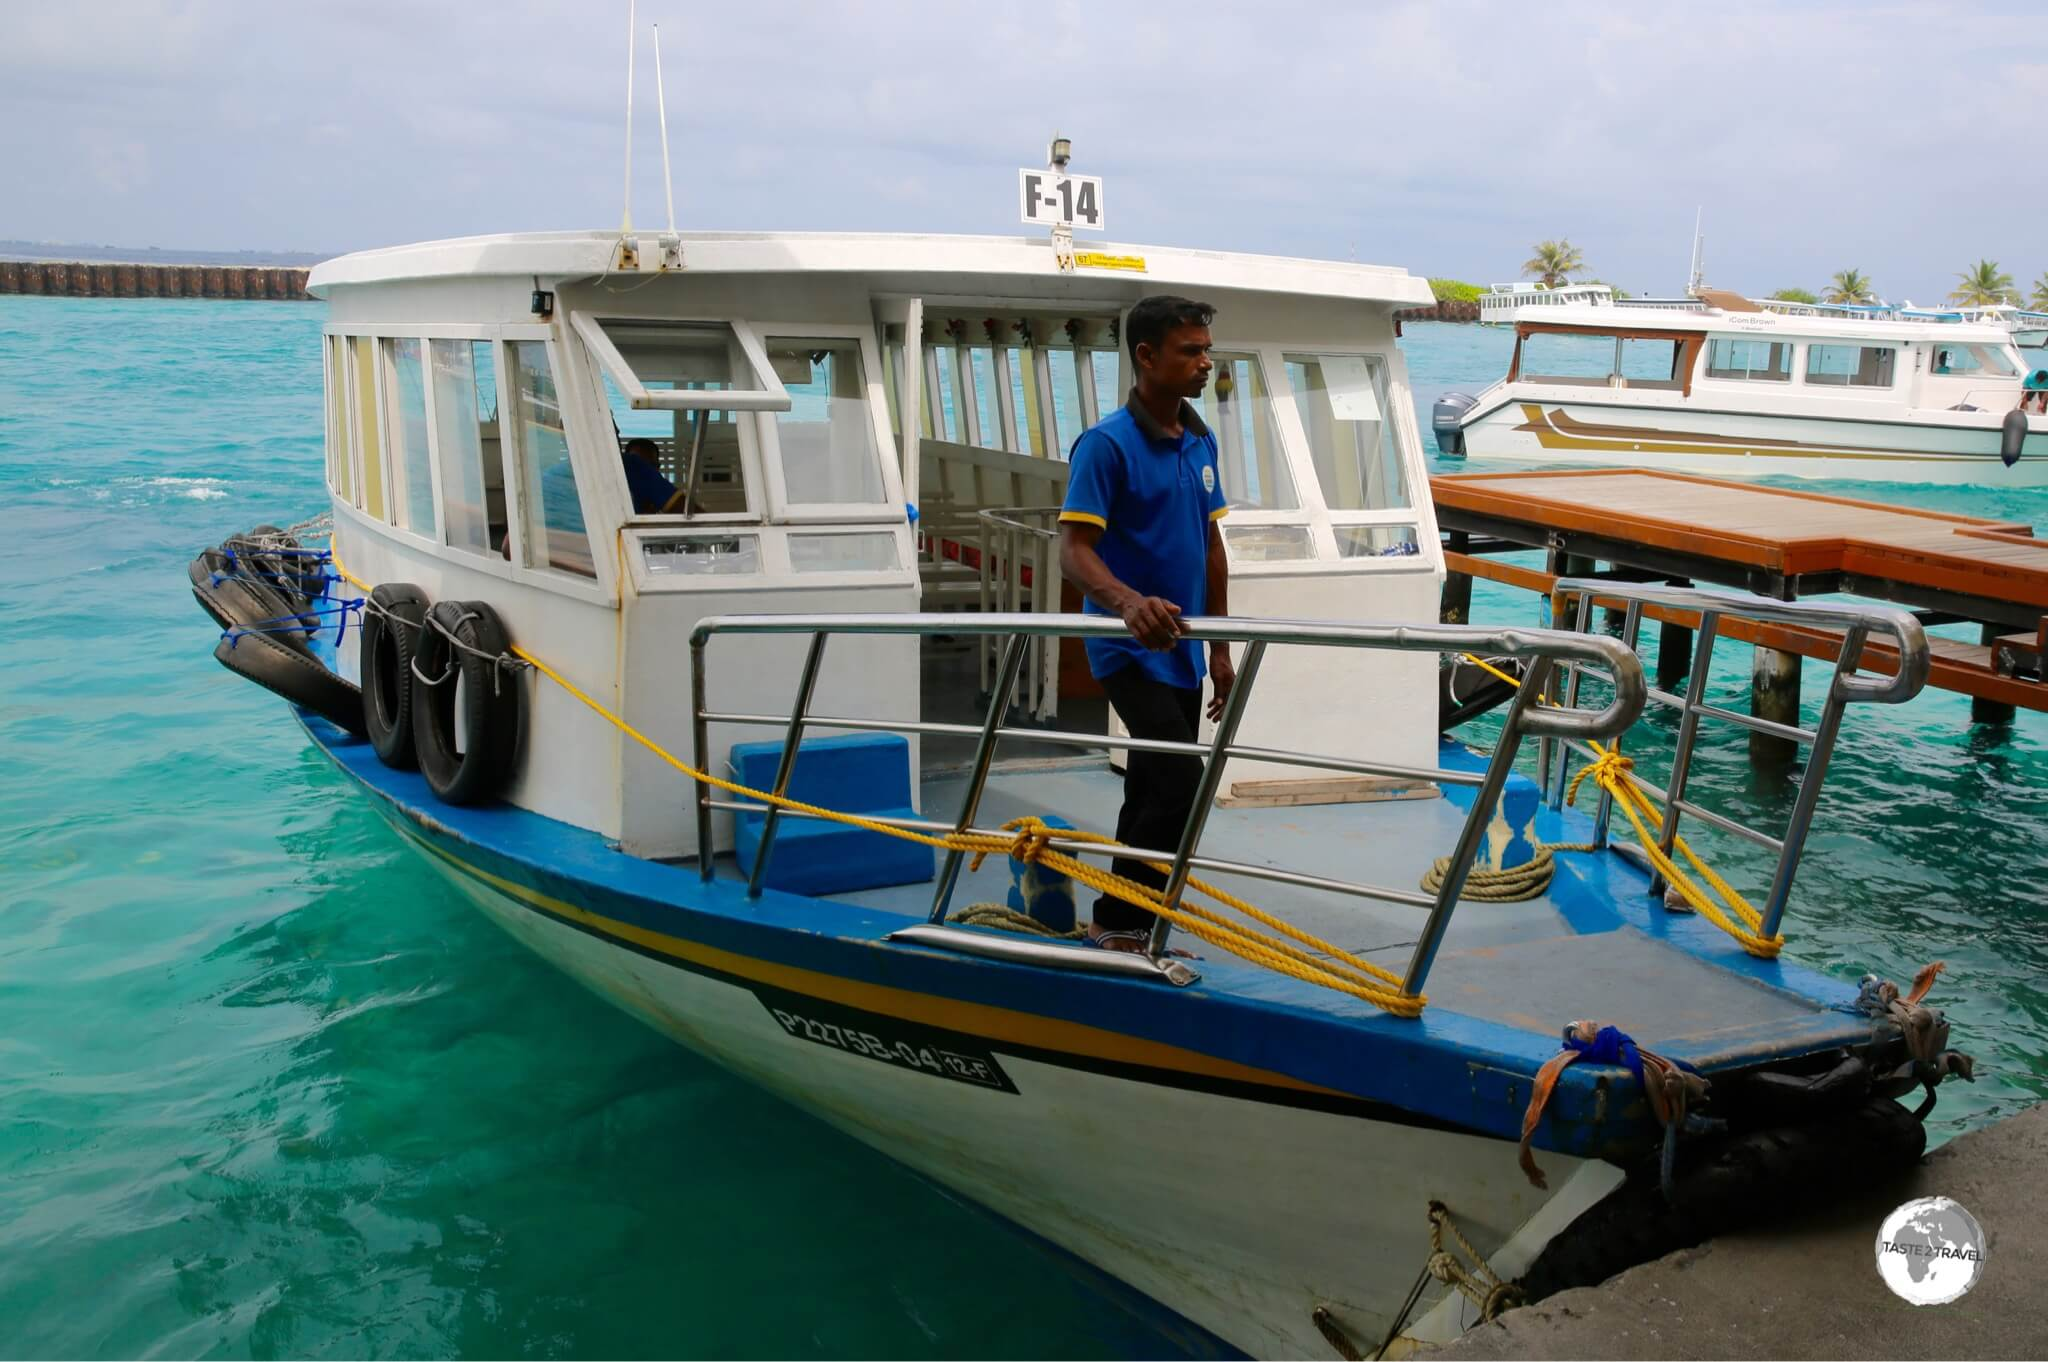 The Airport ferry docked outside Velana International airport.